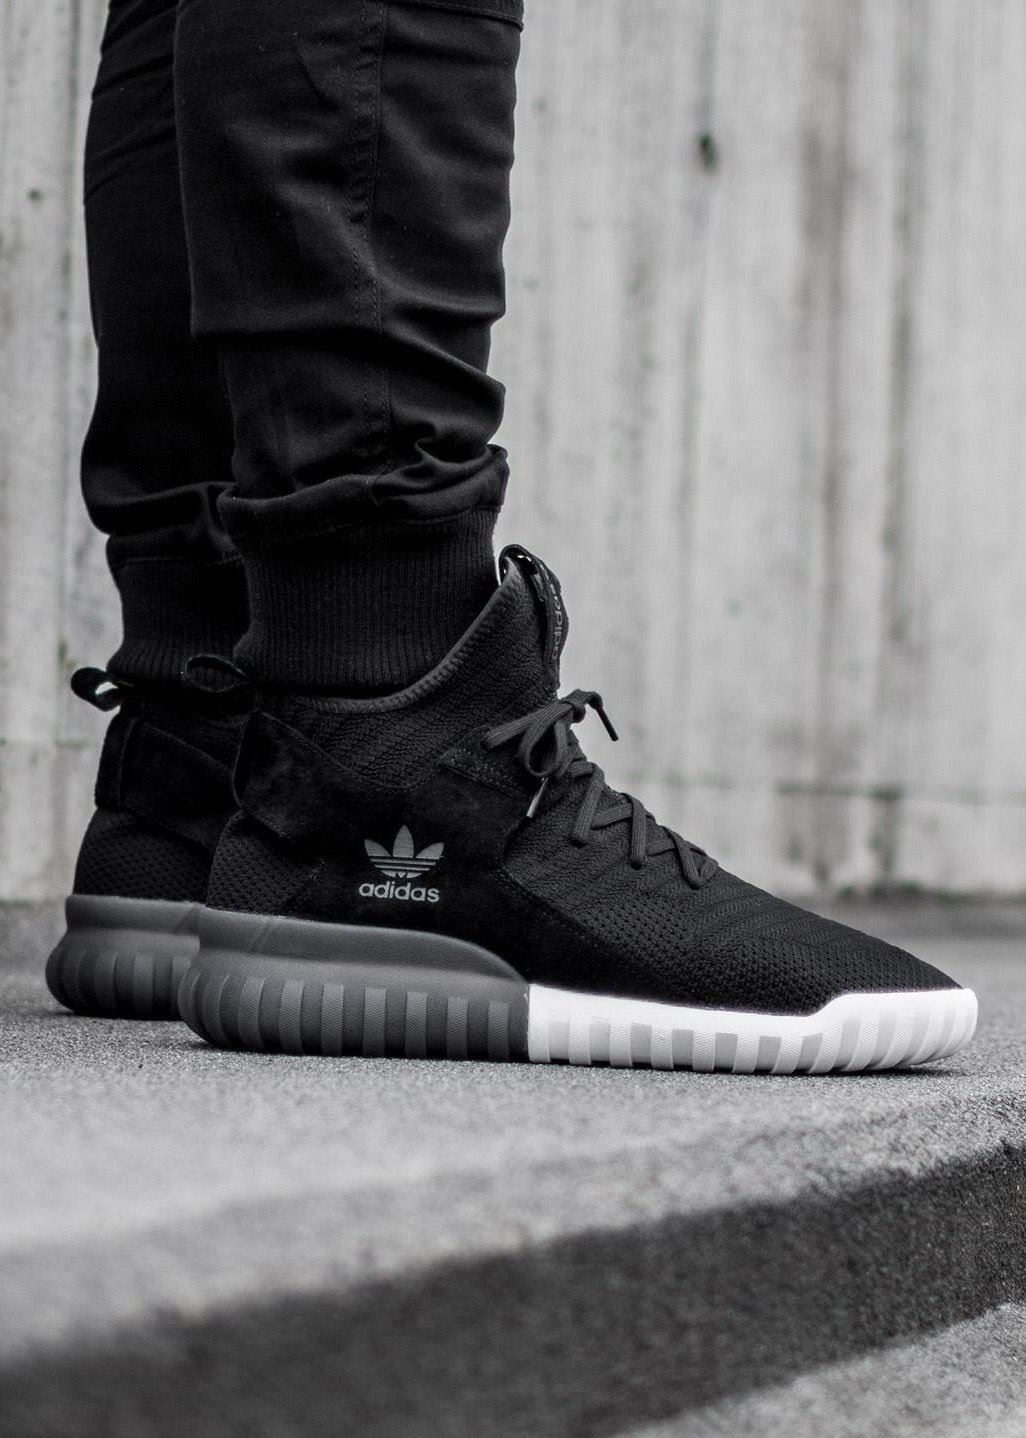 adidas Originals Tubular X Primeknit || Follow @filetlondon